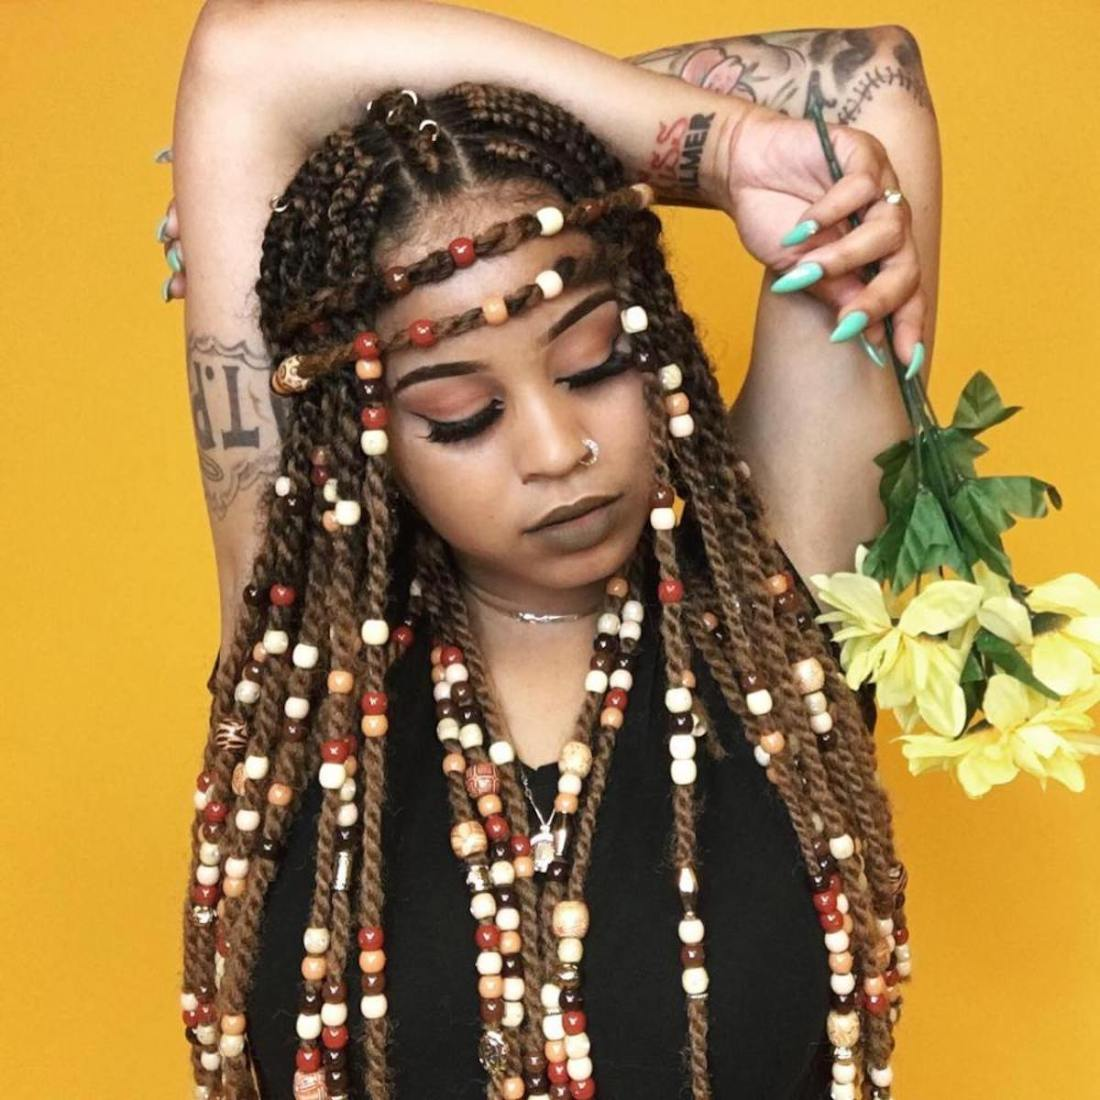 African Hair Styles, African Culture, African Beauty, African History, History of Beads, Black Beautiful Hair, KOLUMN Magazine, KOLUMN, KINDR'D Magazine, KINDR'D, Willoughby Avenue